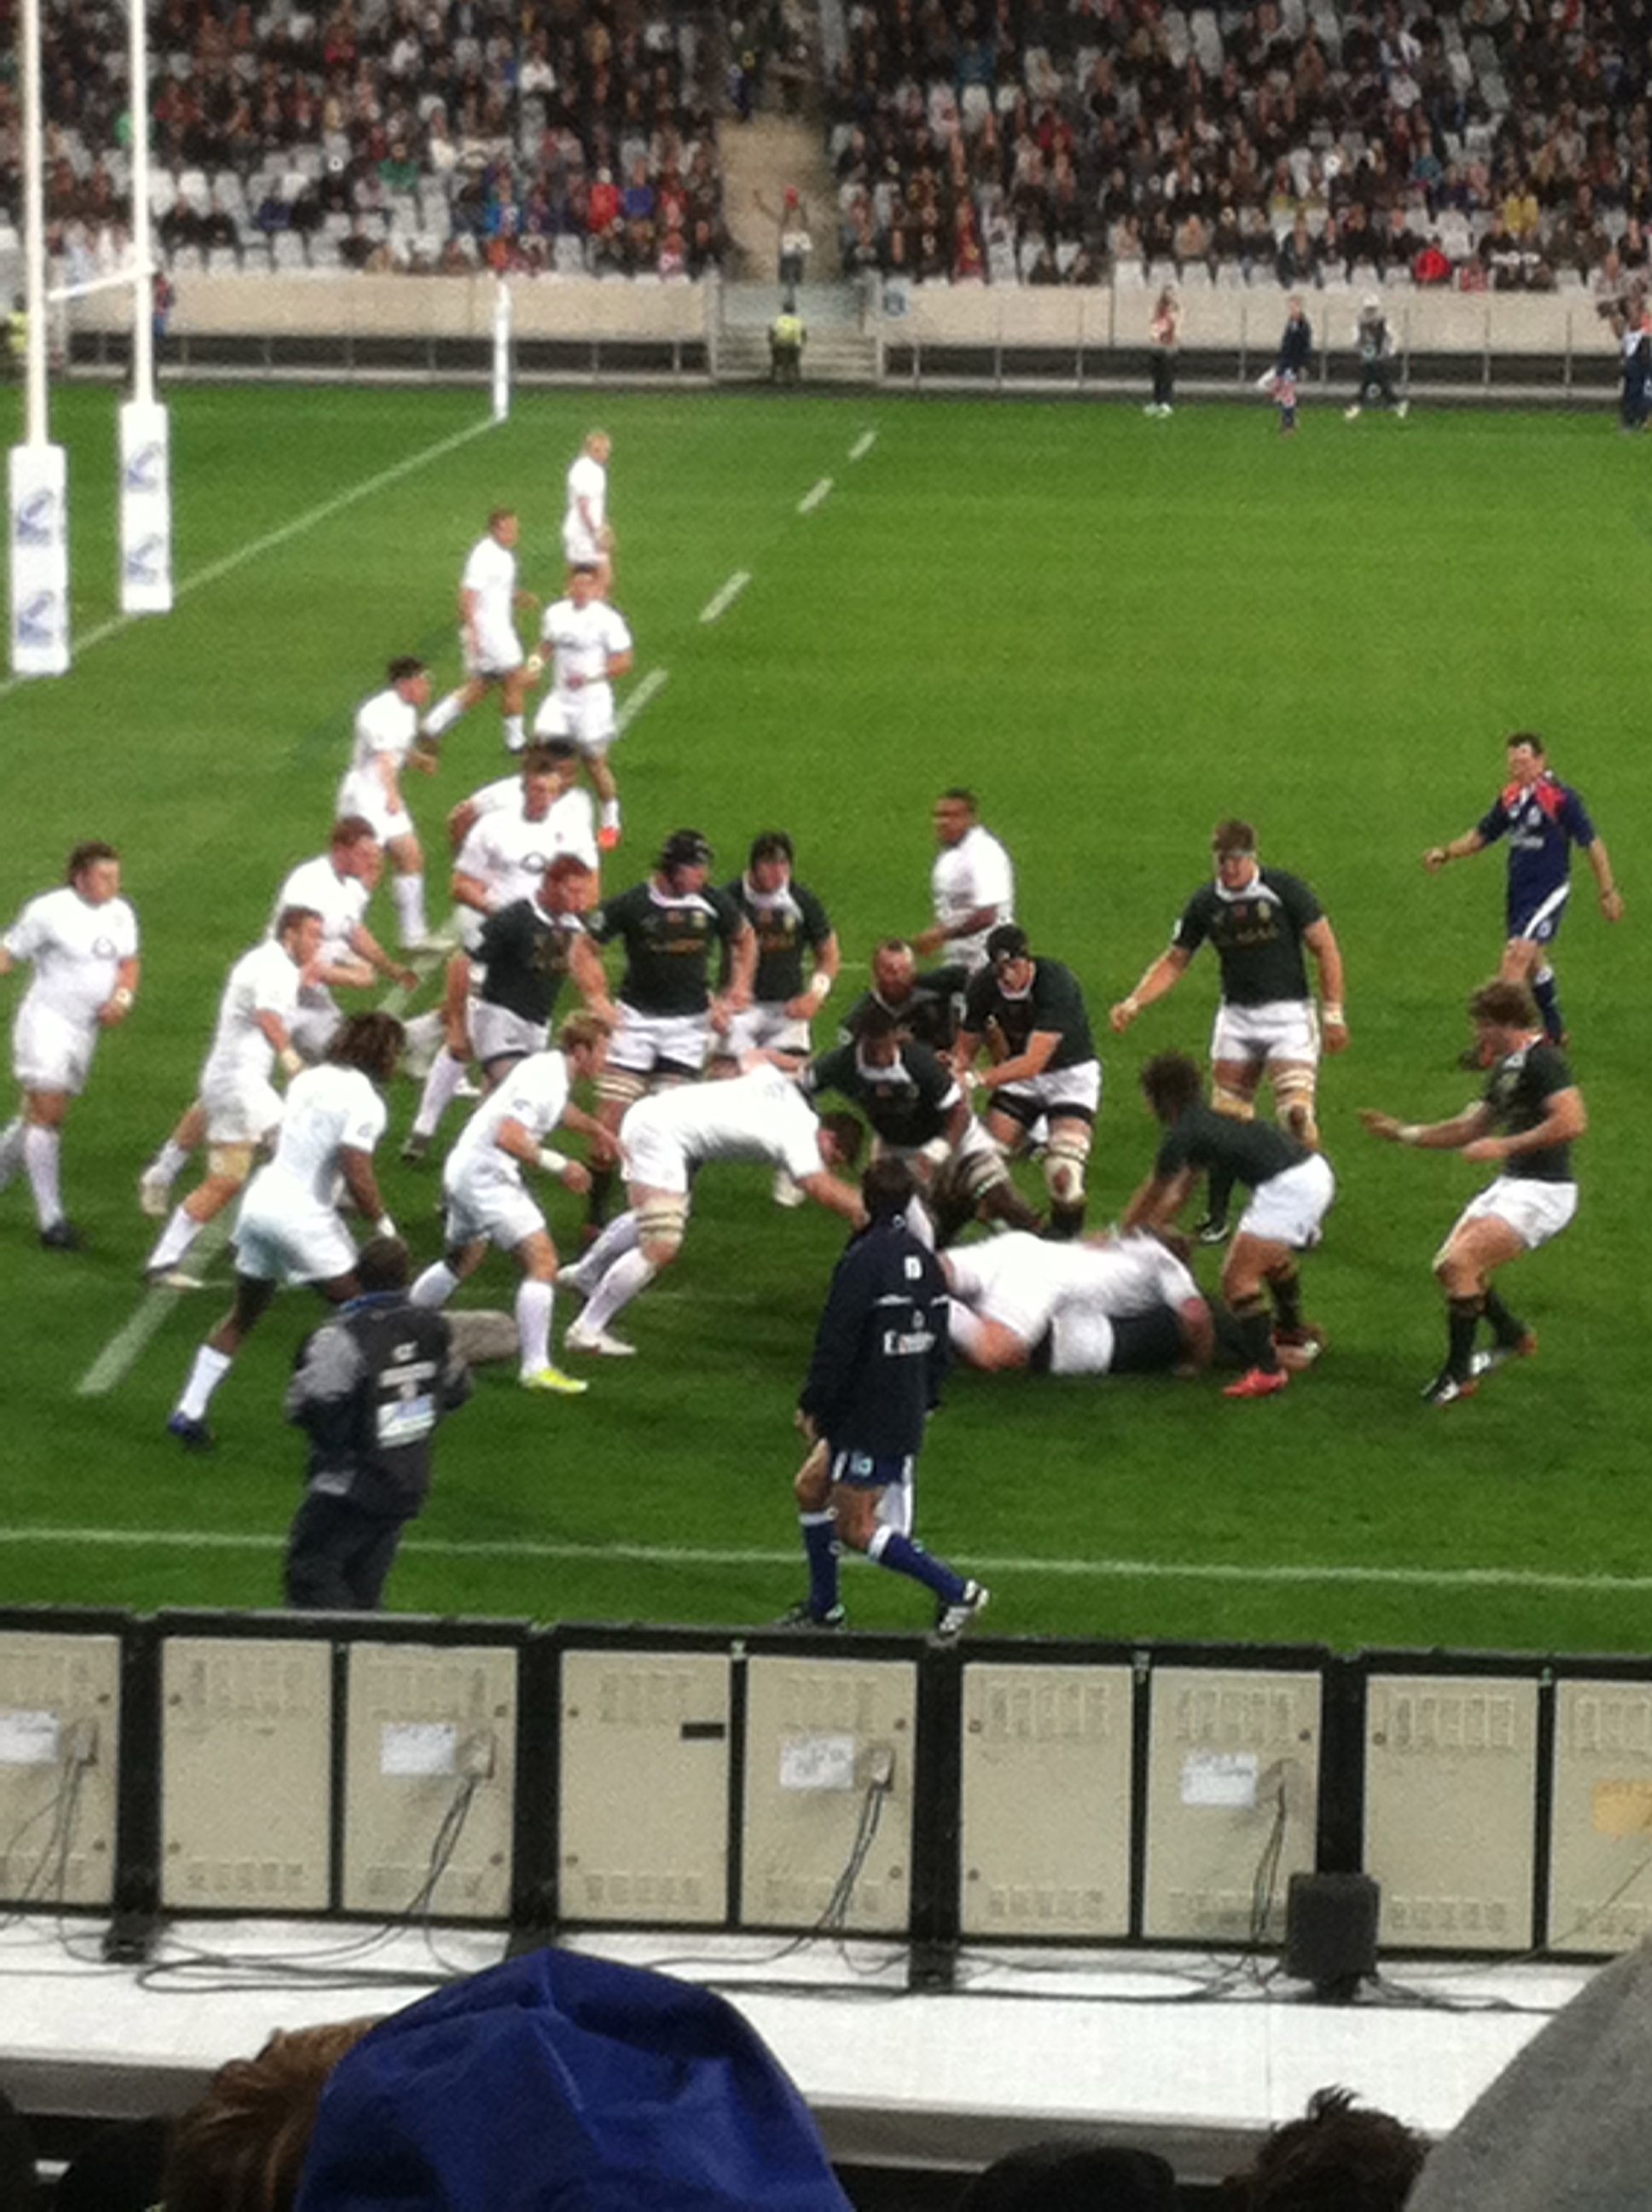 IRB Junior World Cup Rugby Game, England vs. South Africa